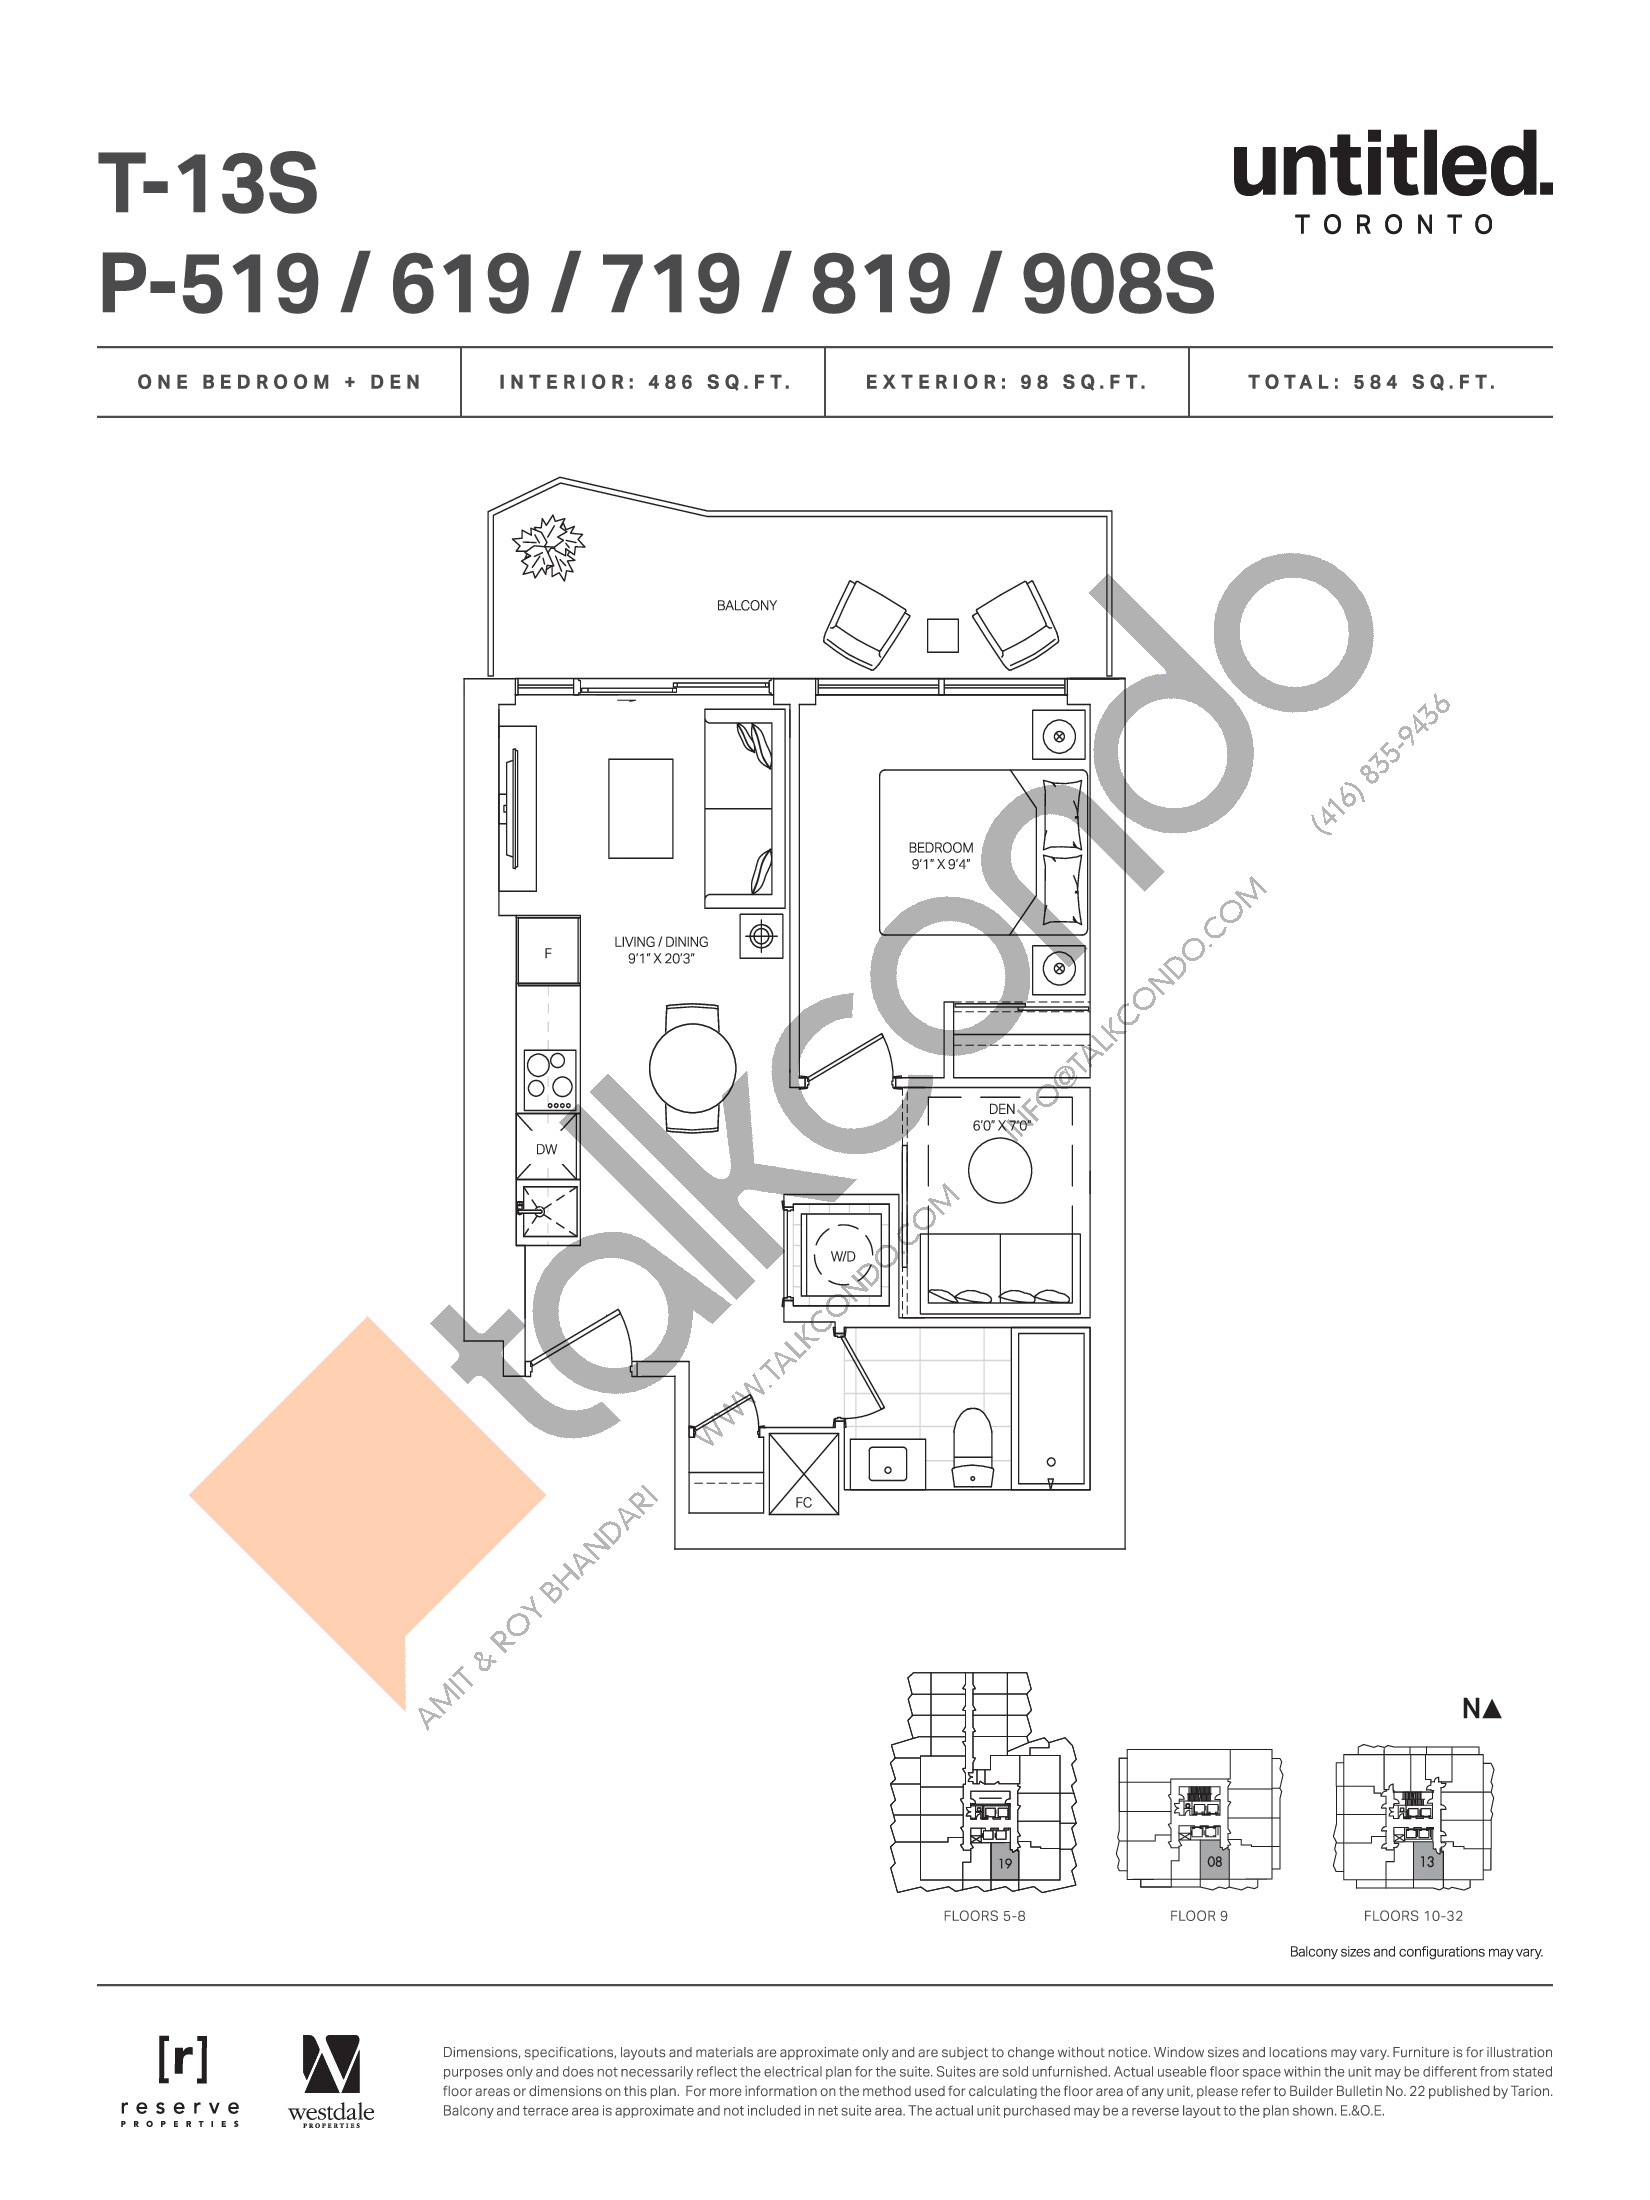 T-13S Floor Plan at Untitled Toronto Condos - 486 sq.ft